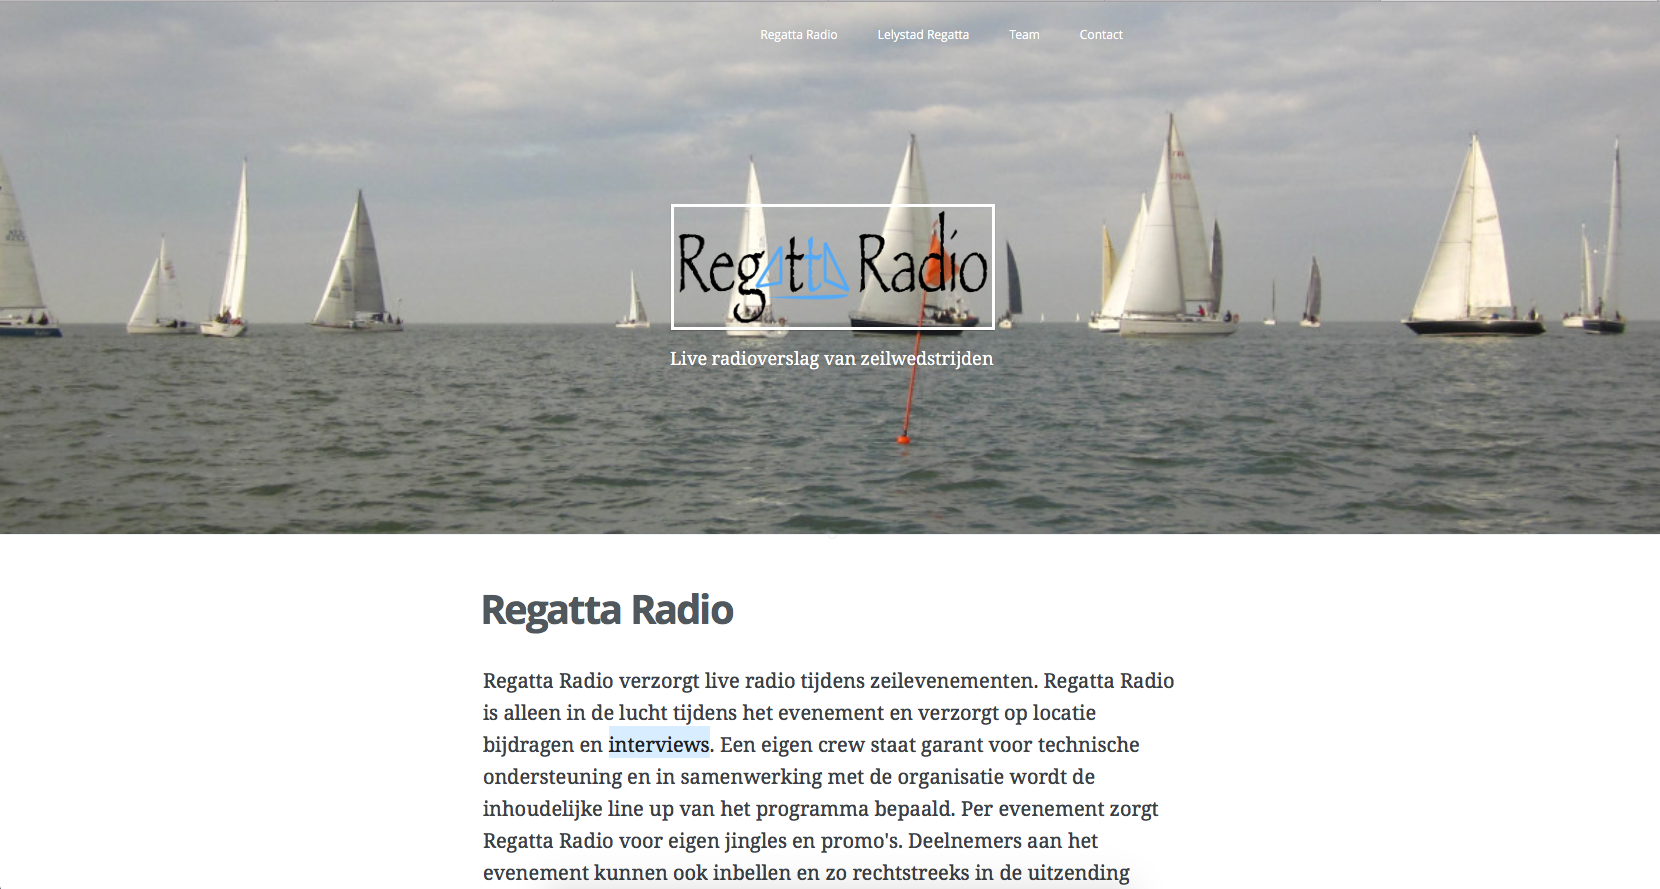 Regattaradio.nl